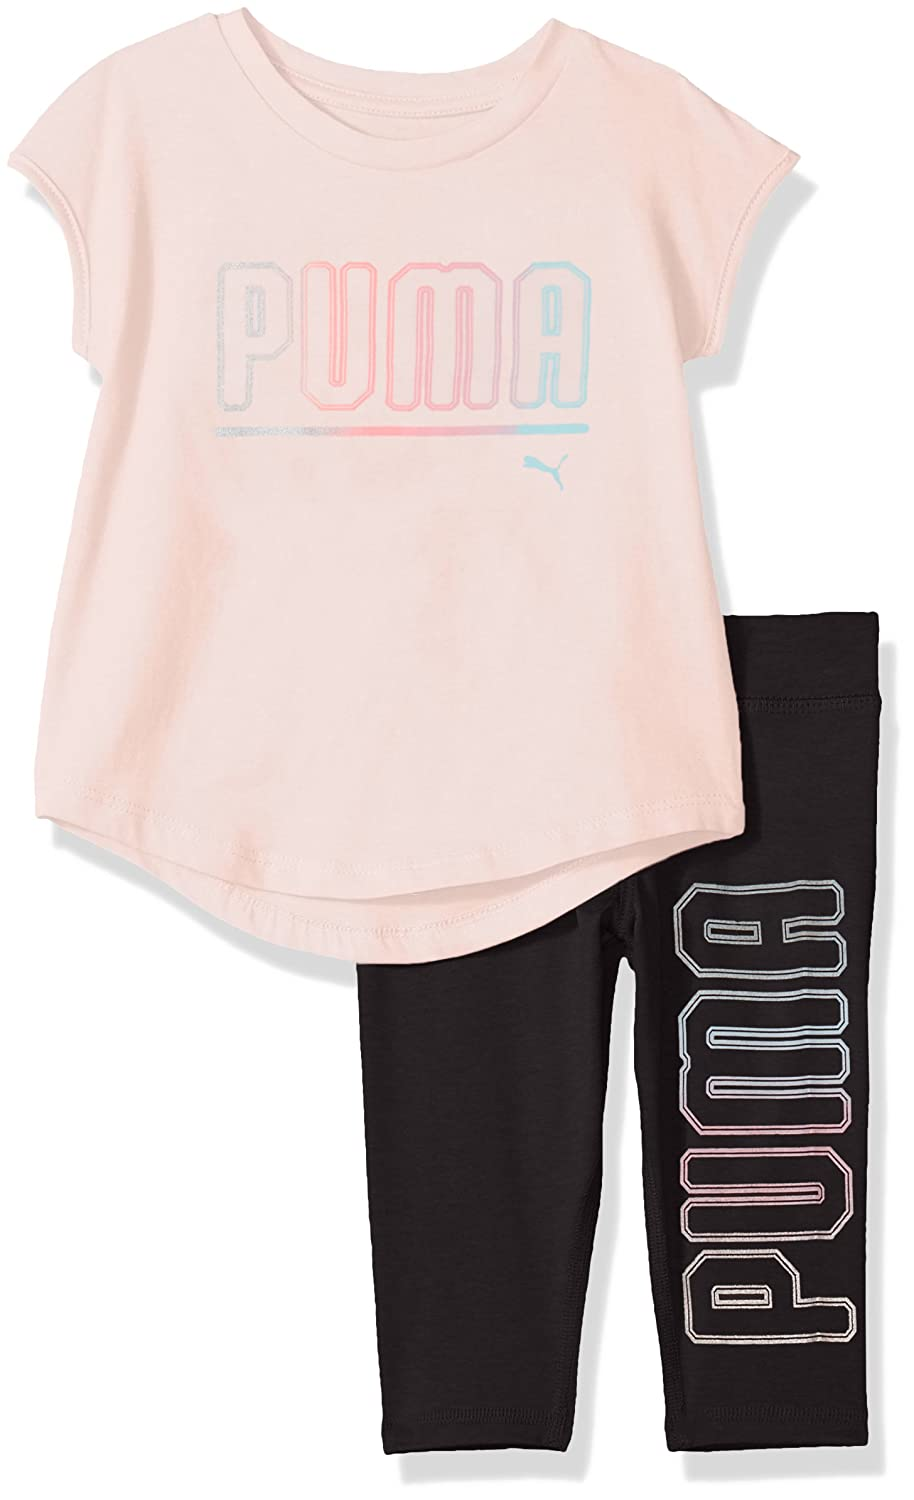 PUMA Girls Girls' 2 Piece Jersey Tee & Capri Set